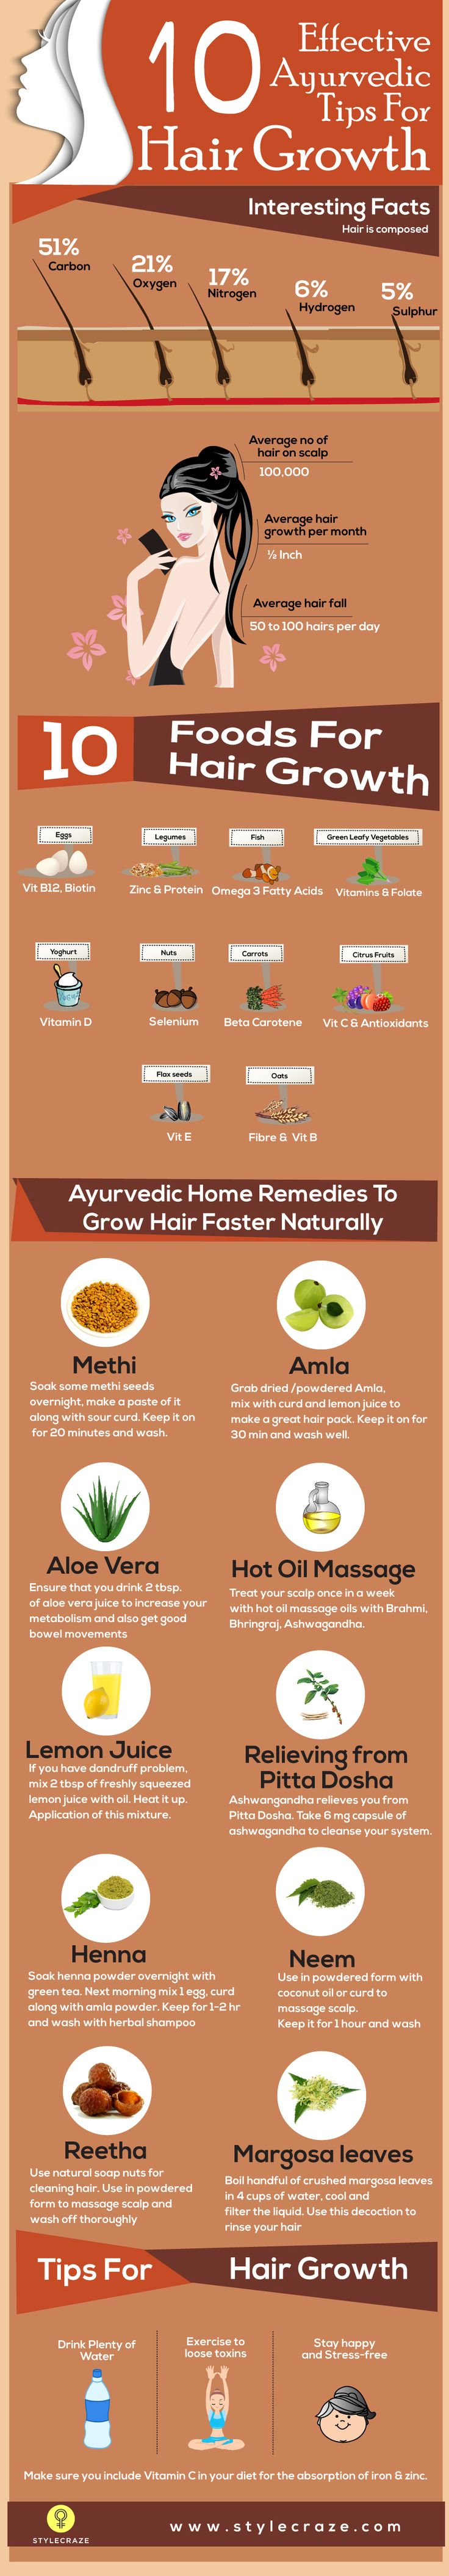 10 Effective Ayurvedic Tips For Hair Growth | Luxury Med Spa in Farmington Hills, MI is a GREAT place to pamper yourself! Call (248) 855-0900 to schedule an appointment or visit our website medicalandspa.com for more information!